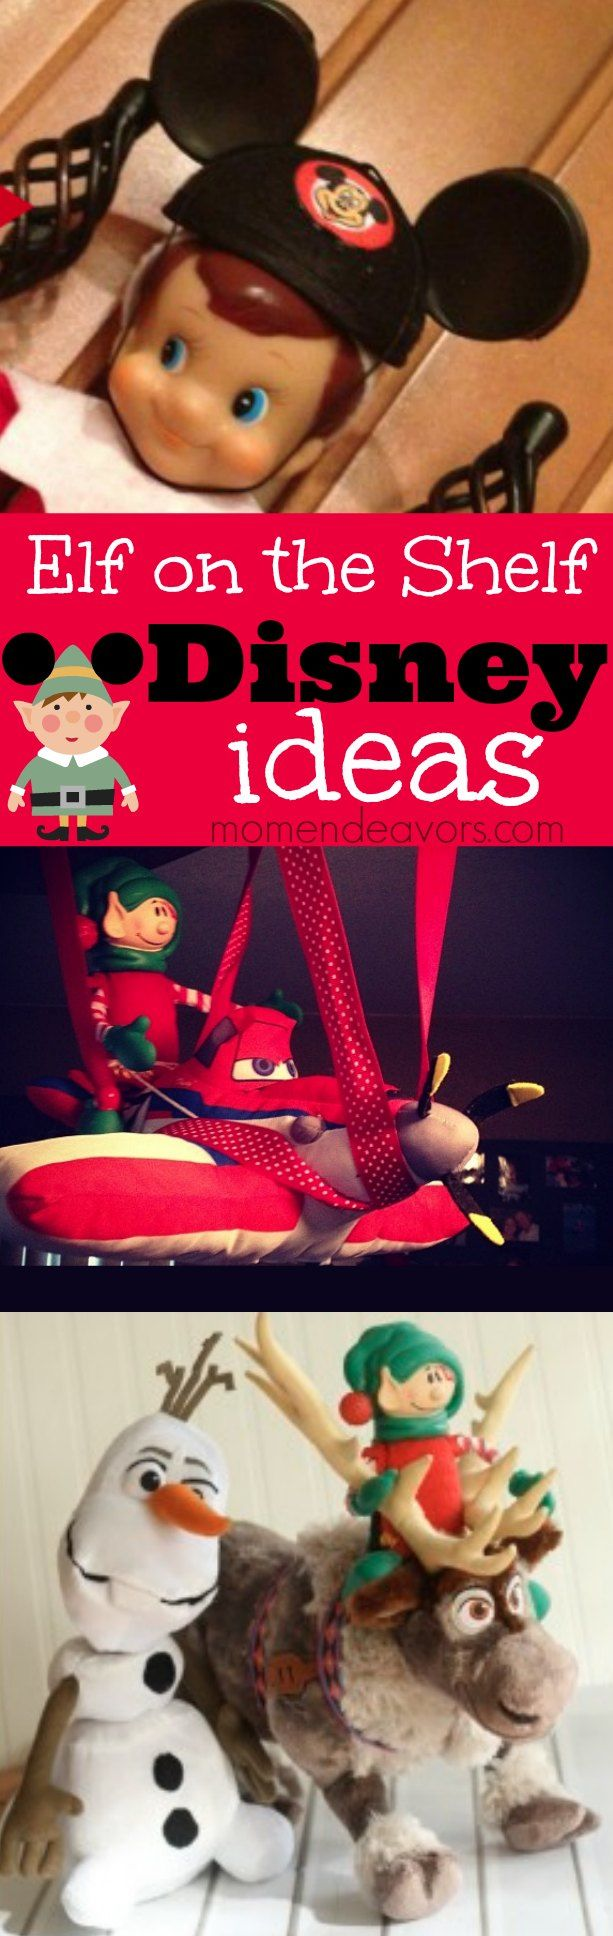 Elf on the Shelf Disney Ideas